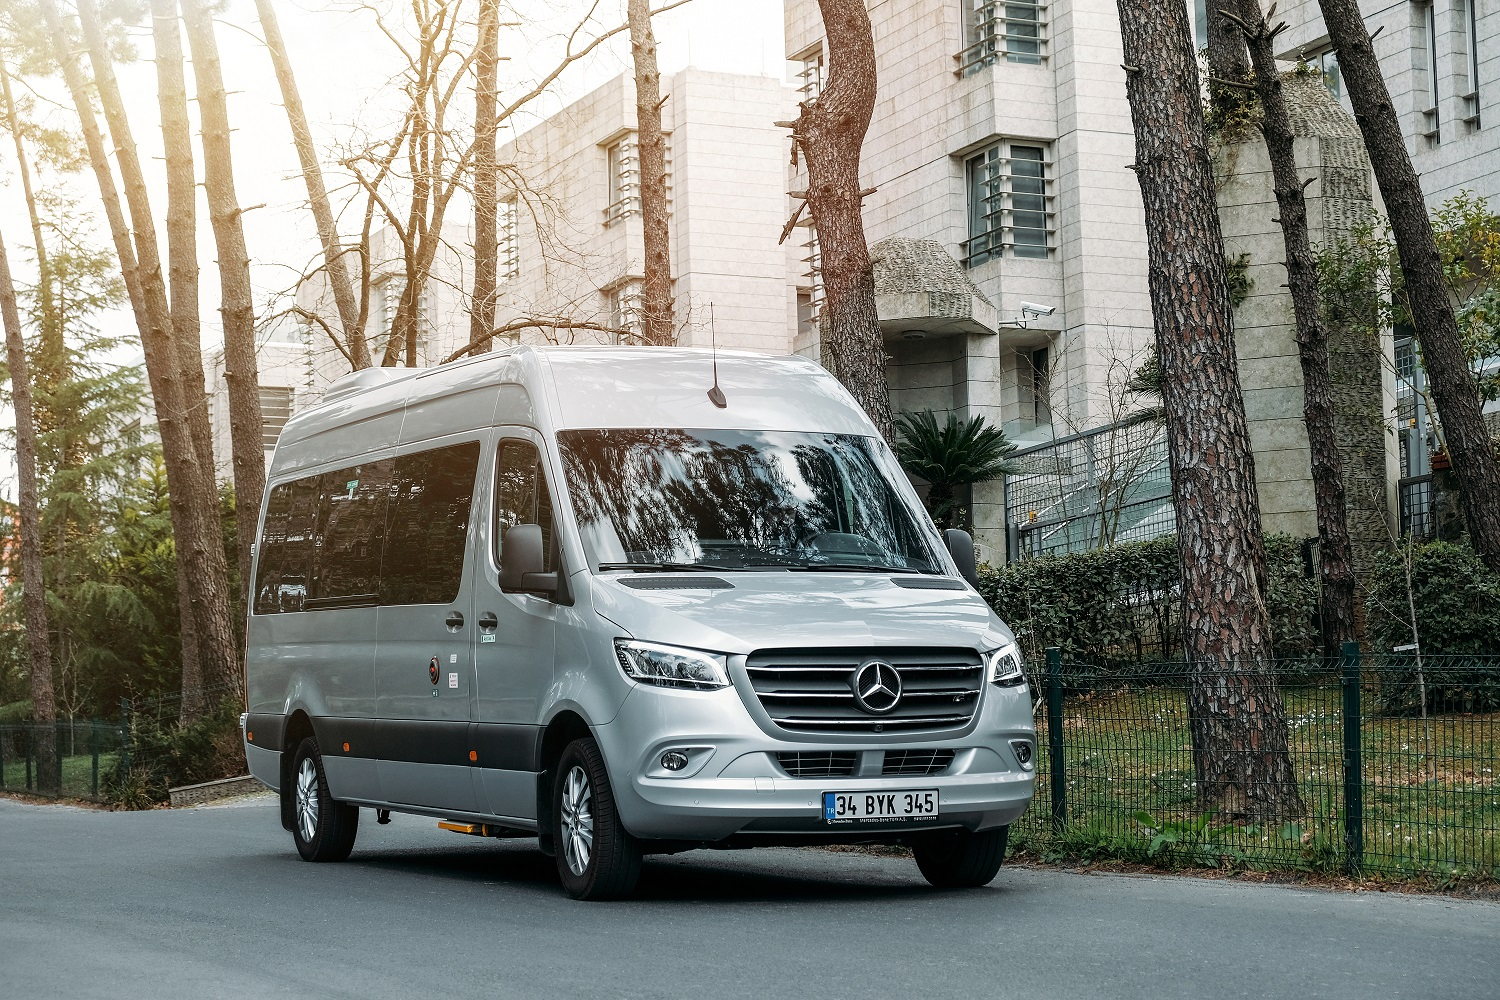 mercedes-benz-sprinter-002.jpg